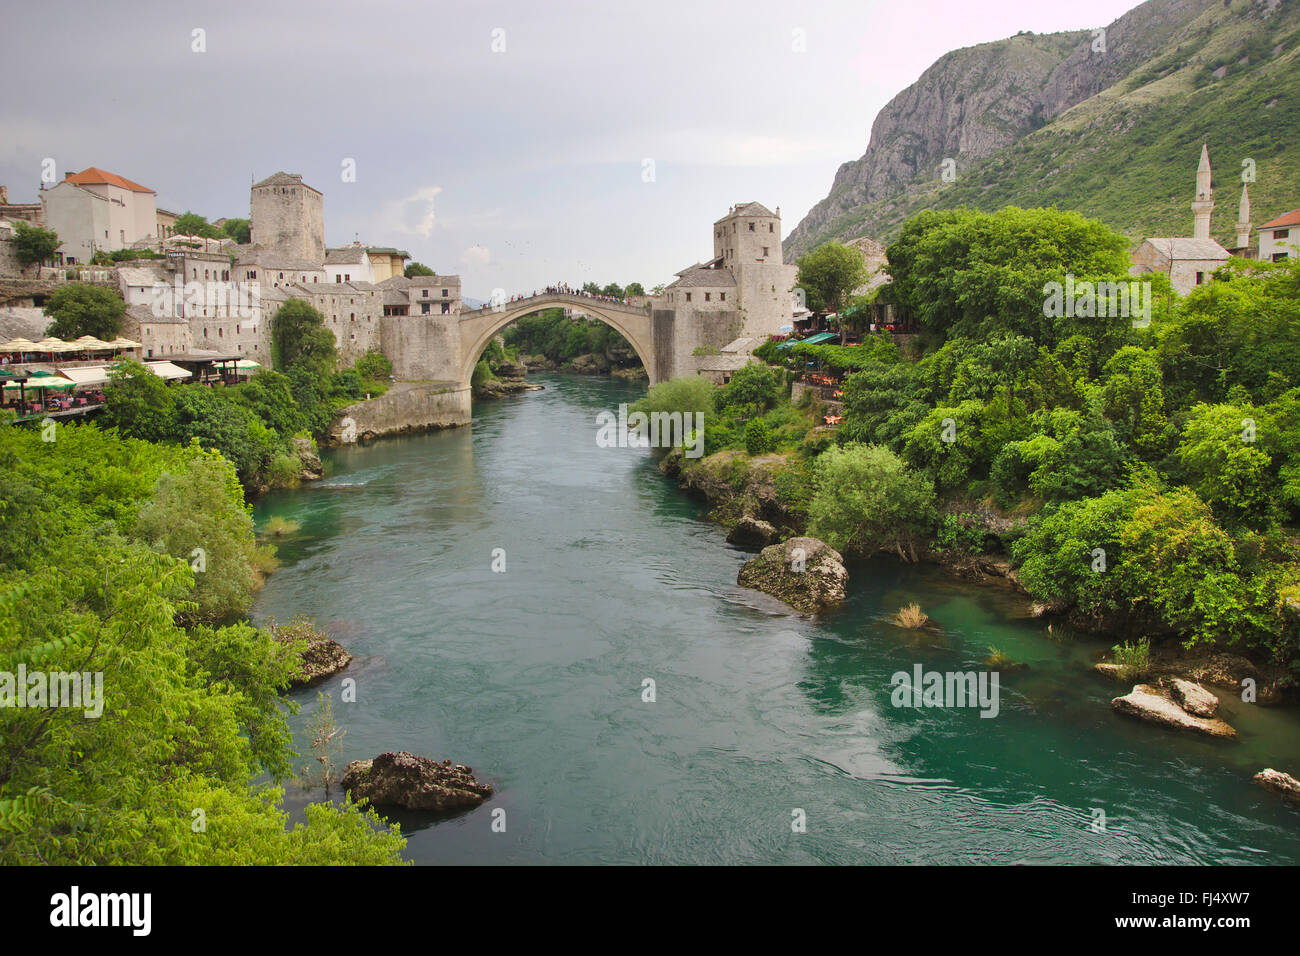 Stari Most, old bridge of Mostar, Bosnia and Herzegovina, Mostar - Stock Image